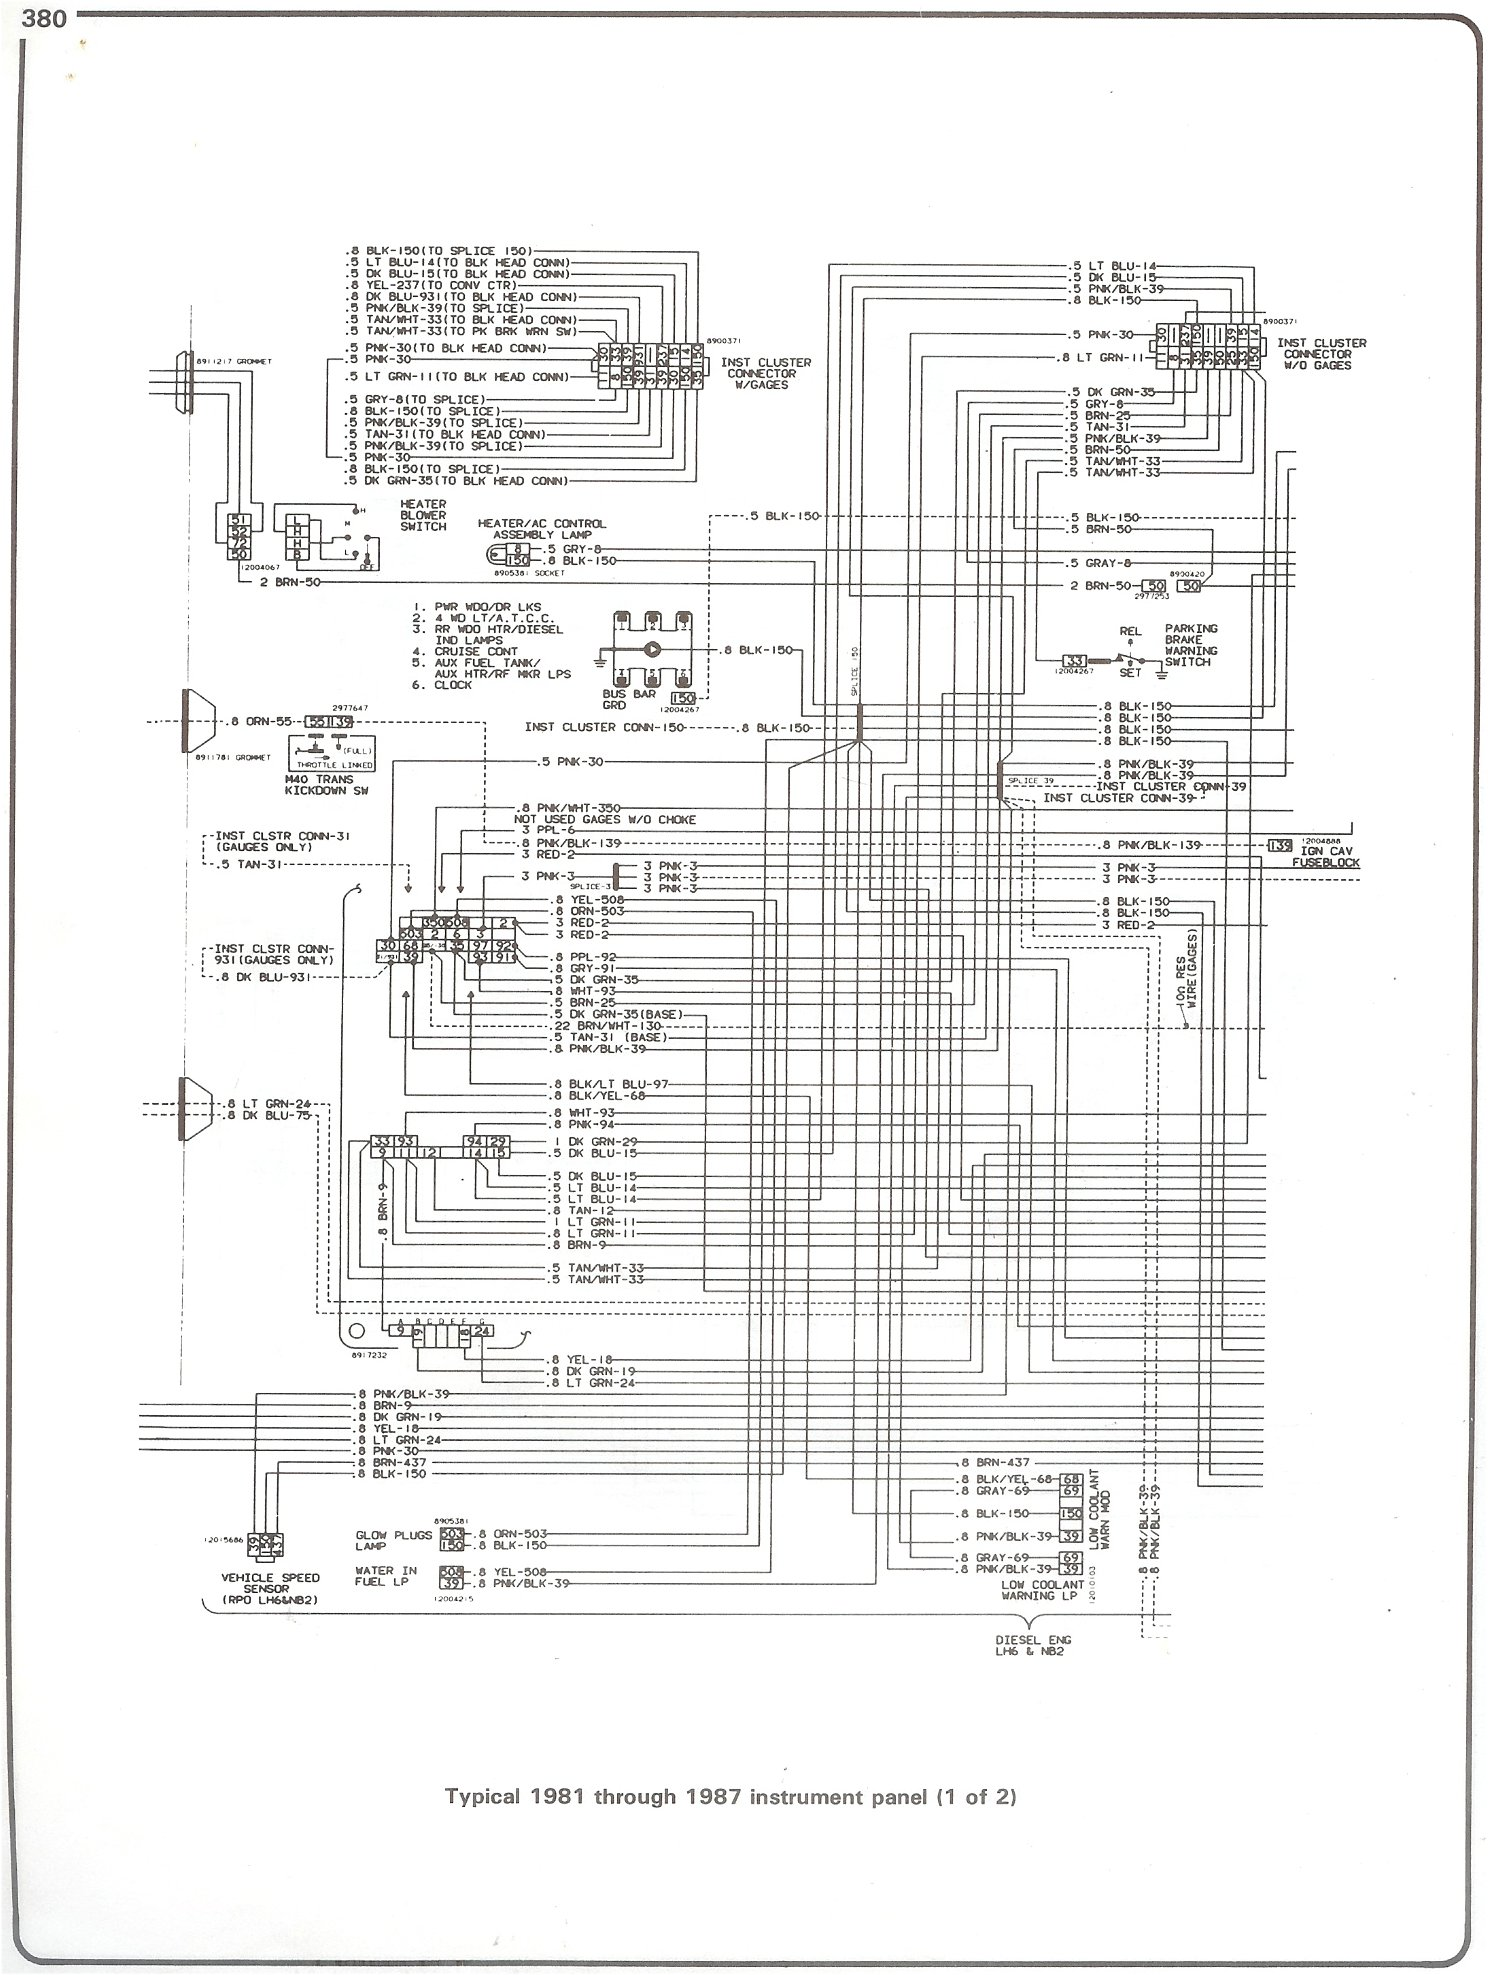 72 Chevy Truck Wiring Diagram On 97 1997 Mitsubishi Montero Sr3500 Engine Main Fuse Box 73 C10 Wire Electrical House U2022 Rh Universalservices Co